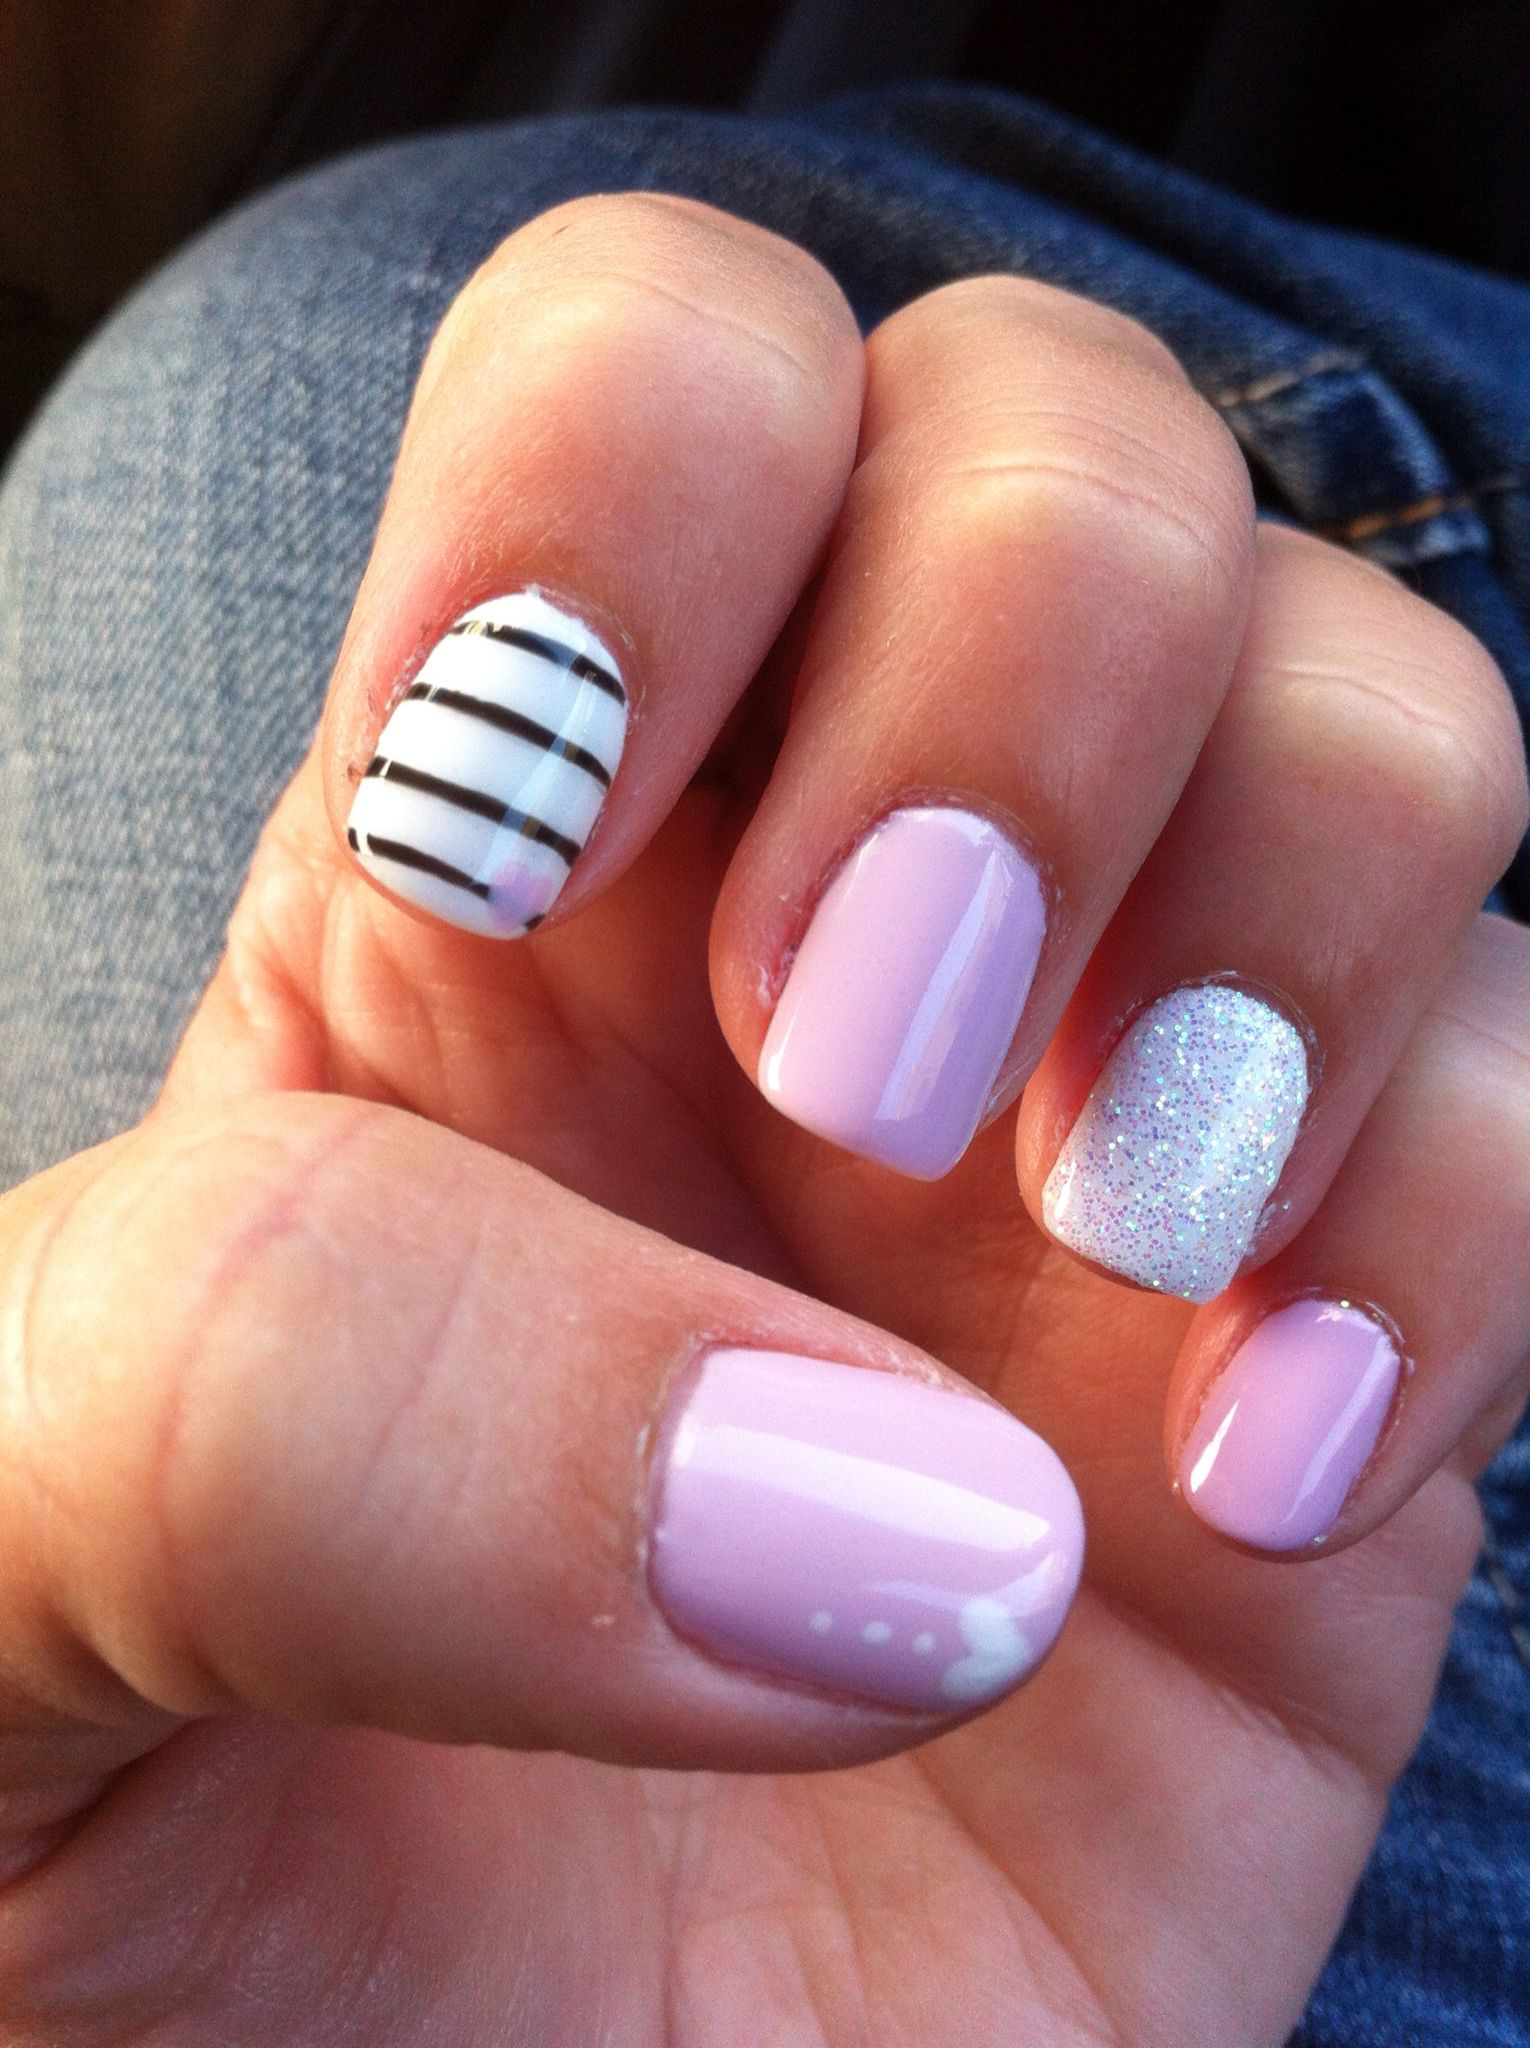 Pink and white nails, glitter ring finger, hearts, and stripes